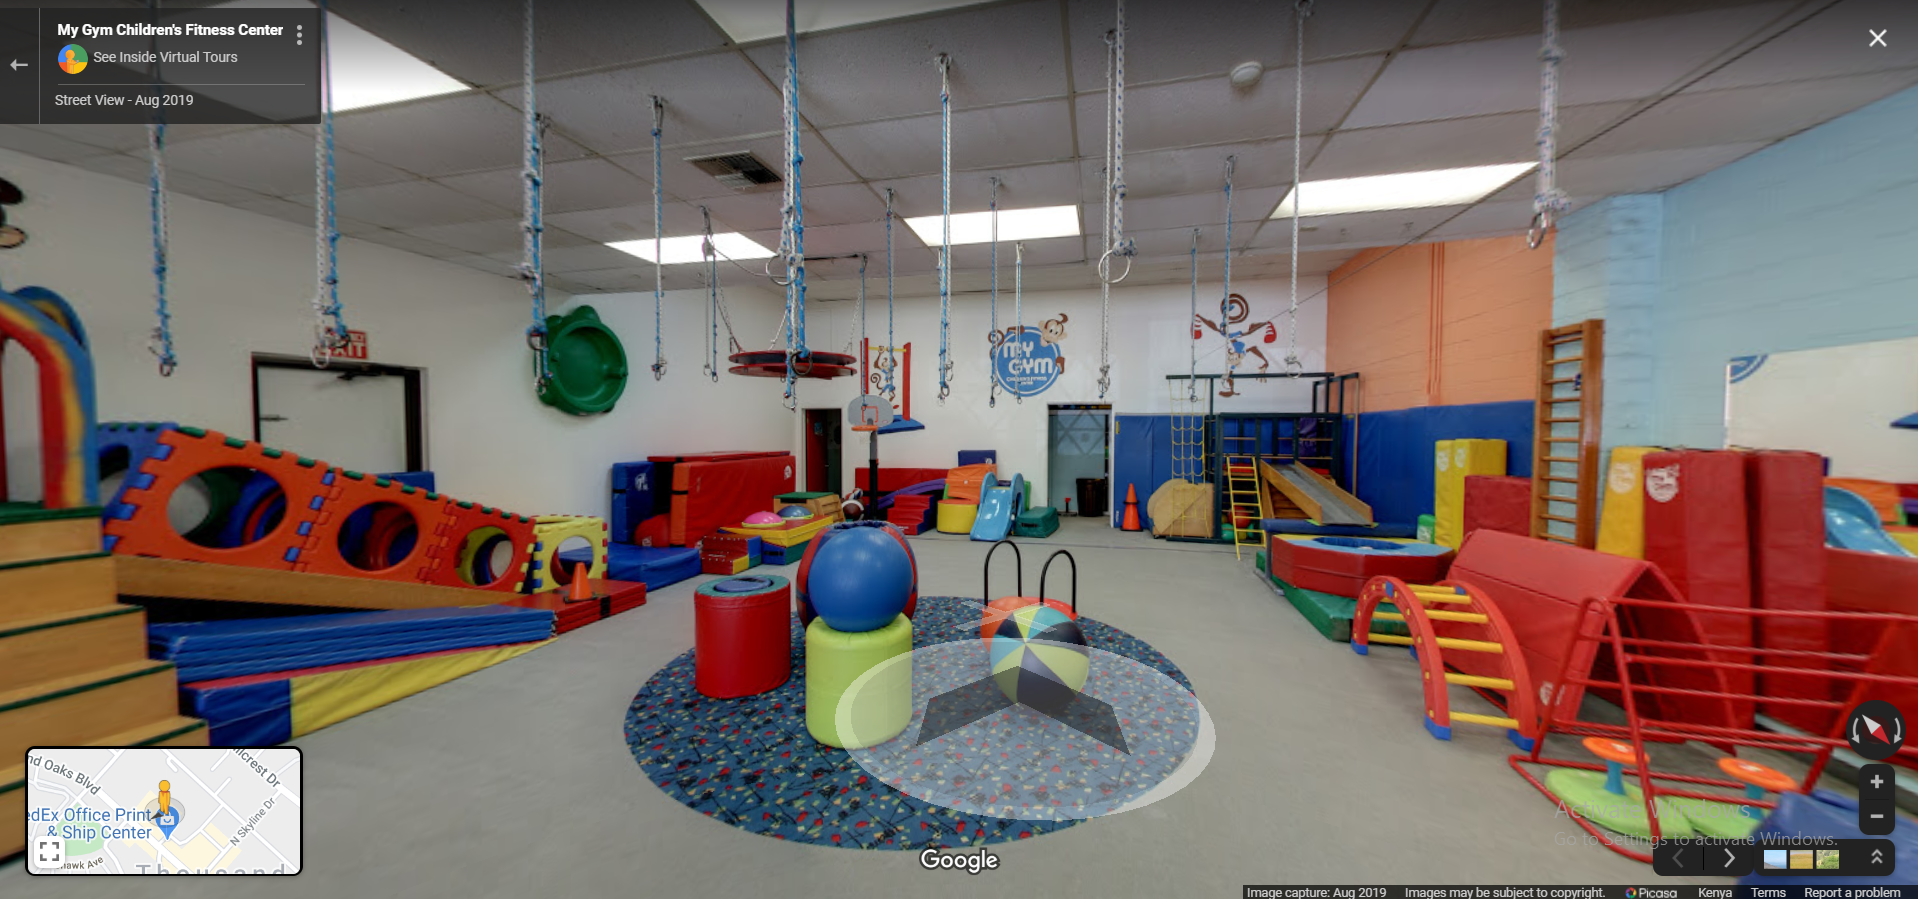 My Gym Children's Fitness Center - Thousand Oaks